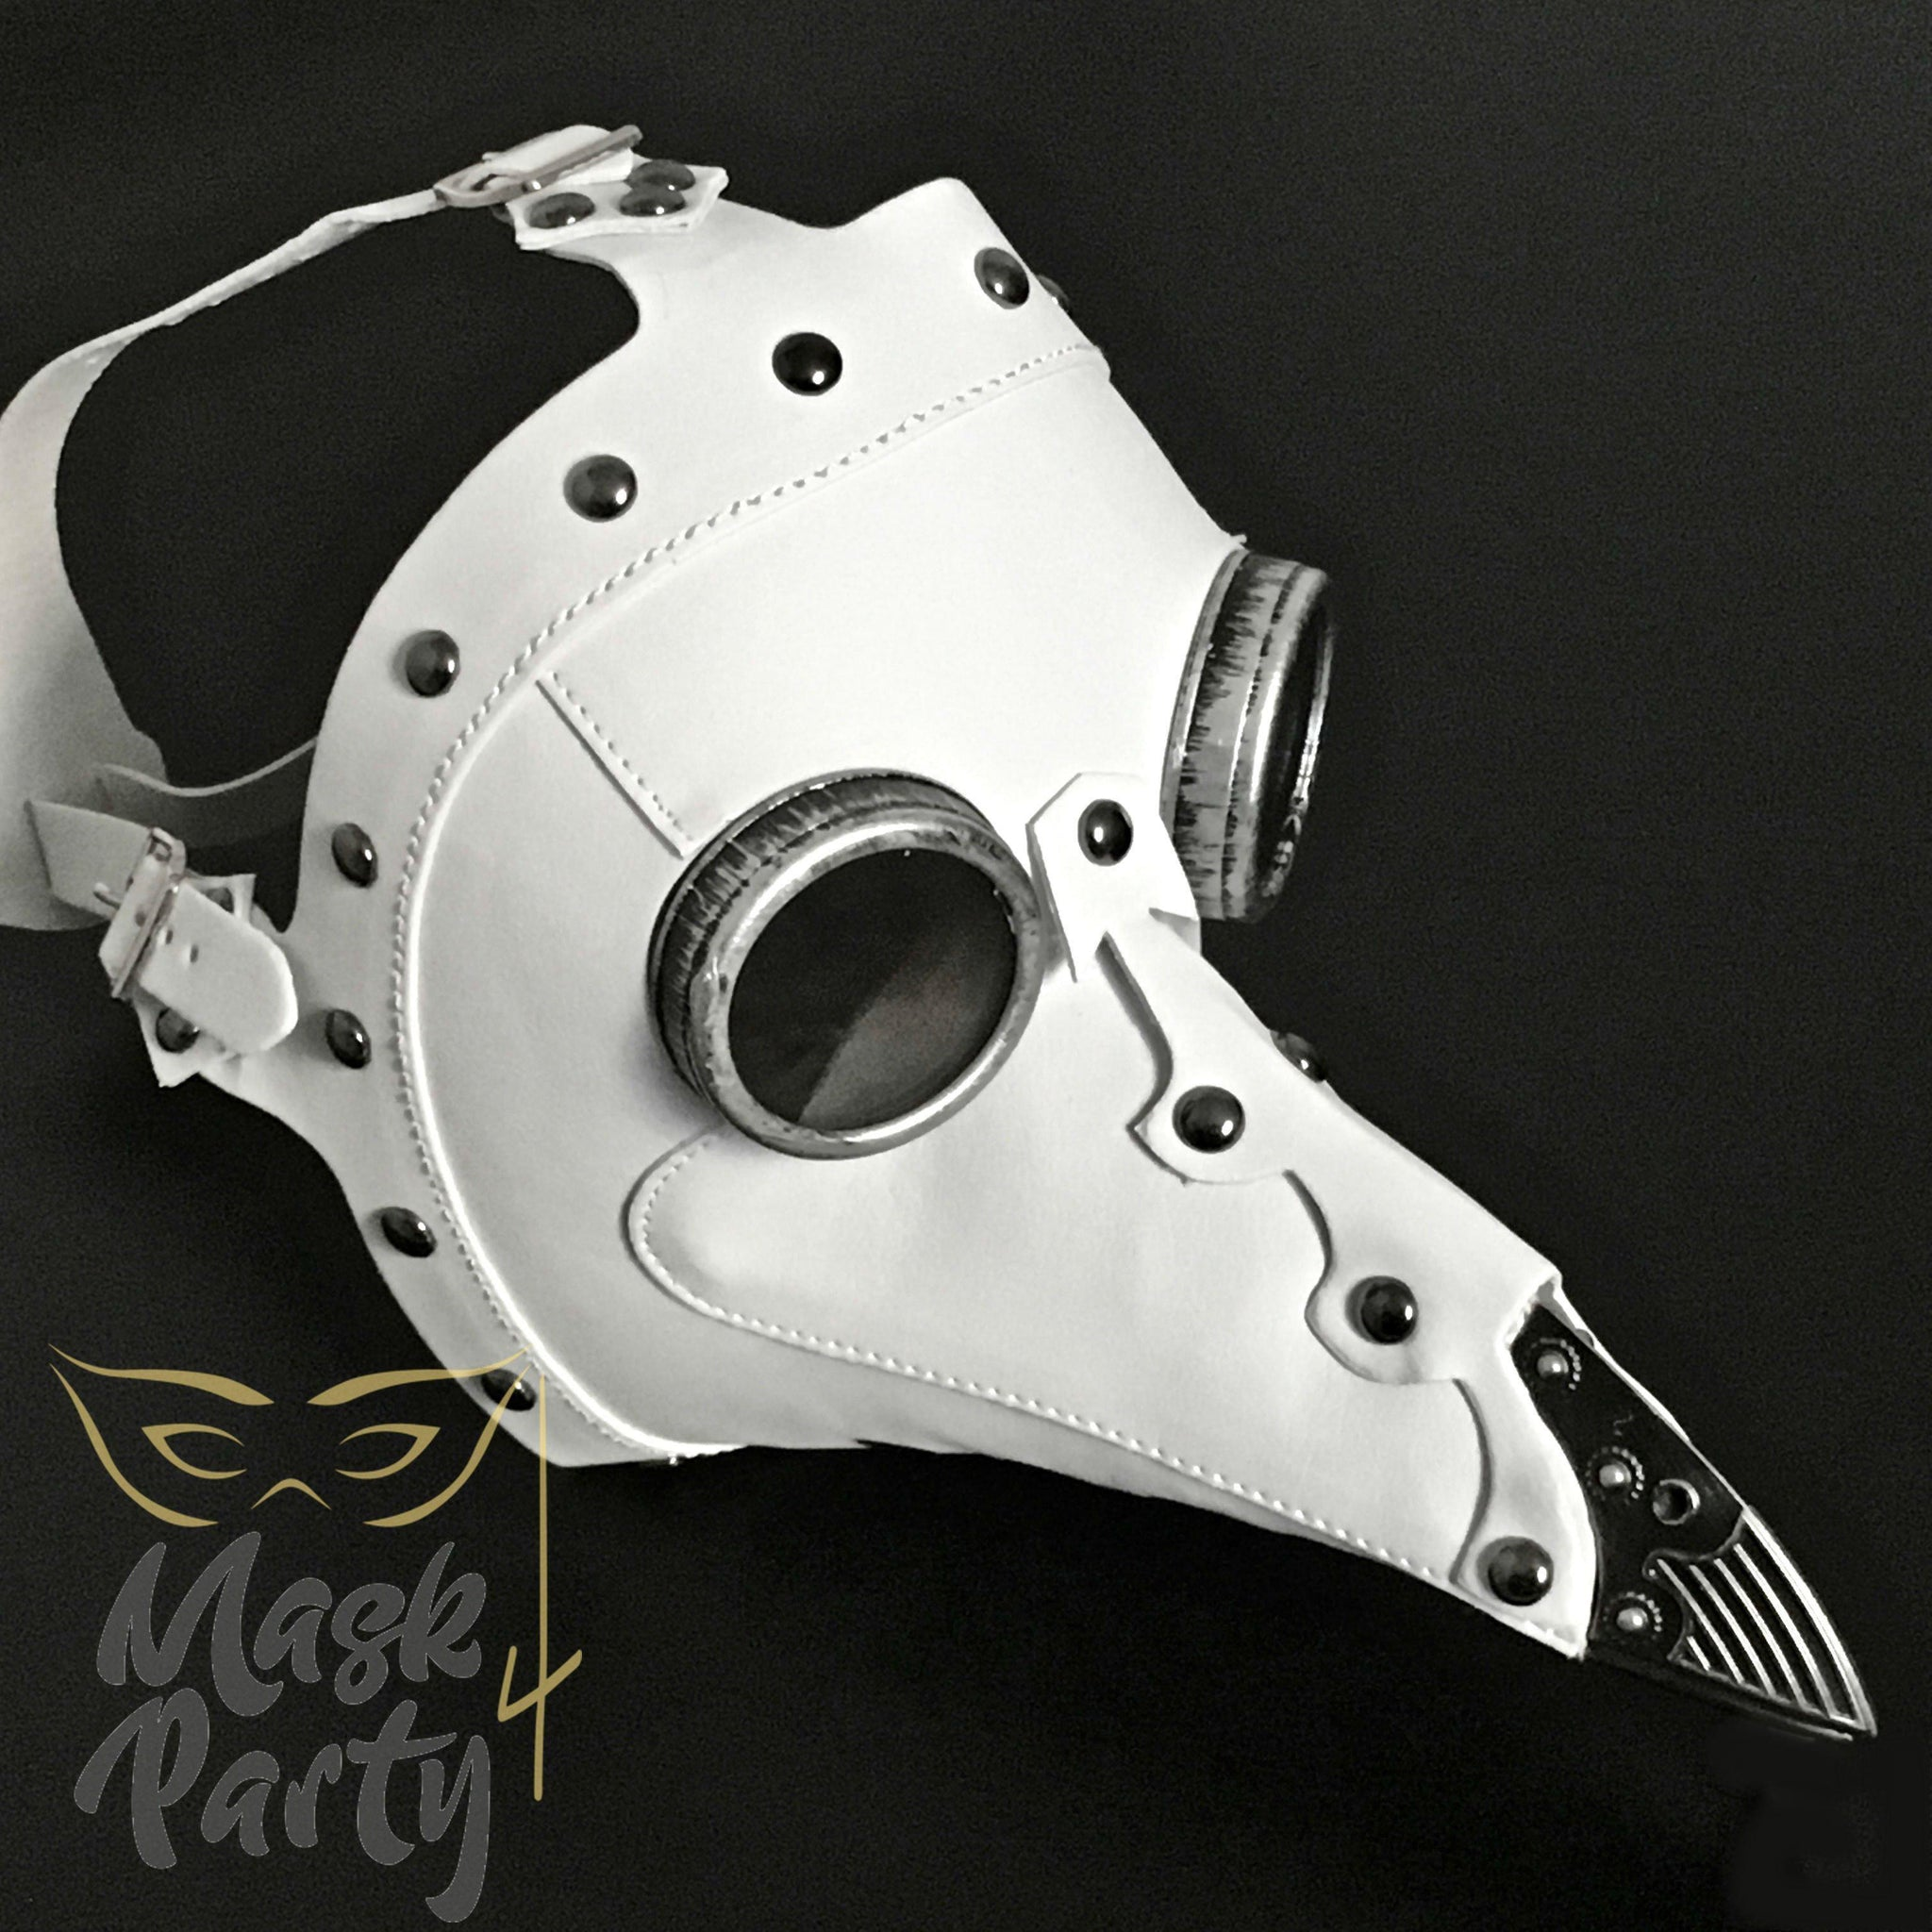 NEW - DAY OF THE DEAD MASK - DEATH PLAGUE DOCTOR - WHITE - Mask4Party